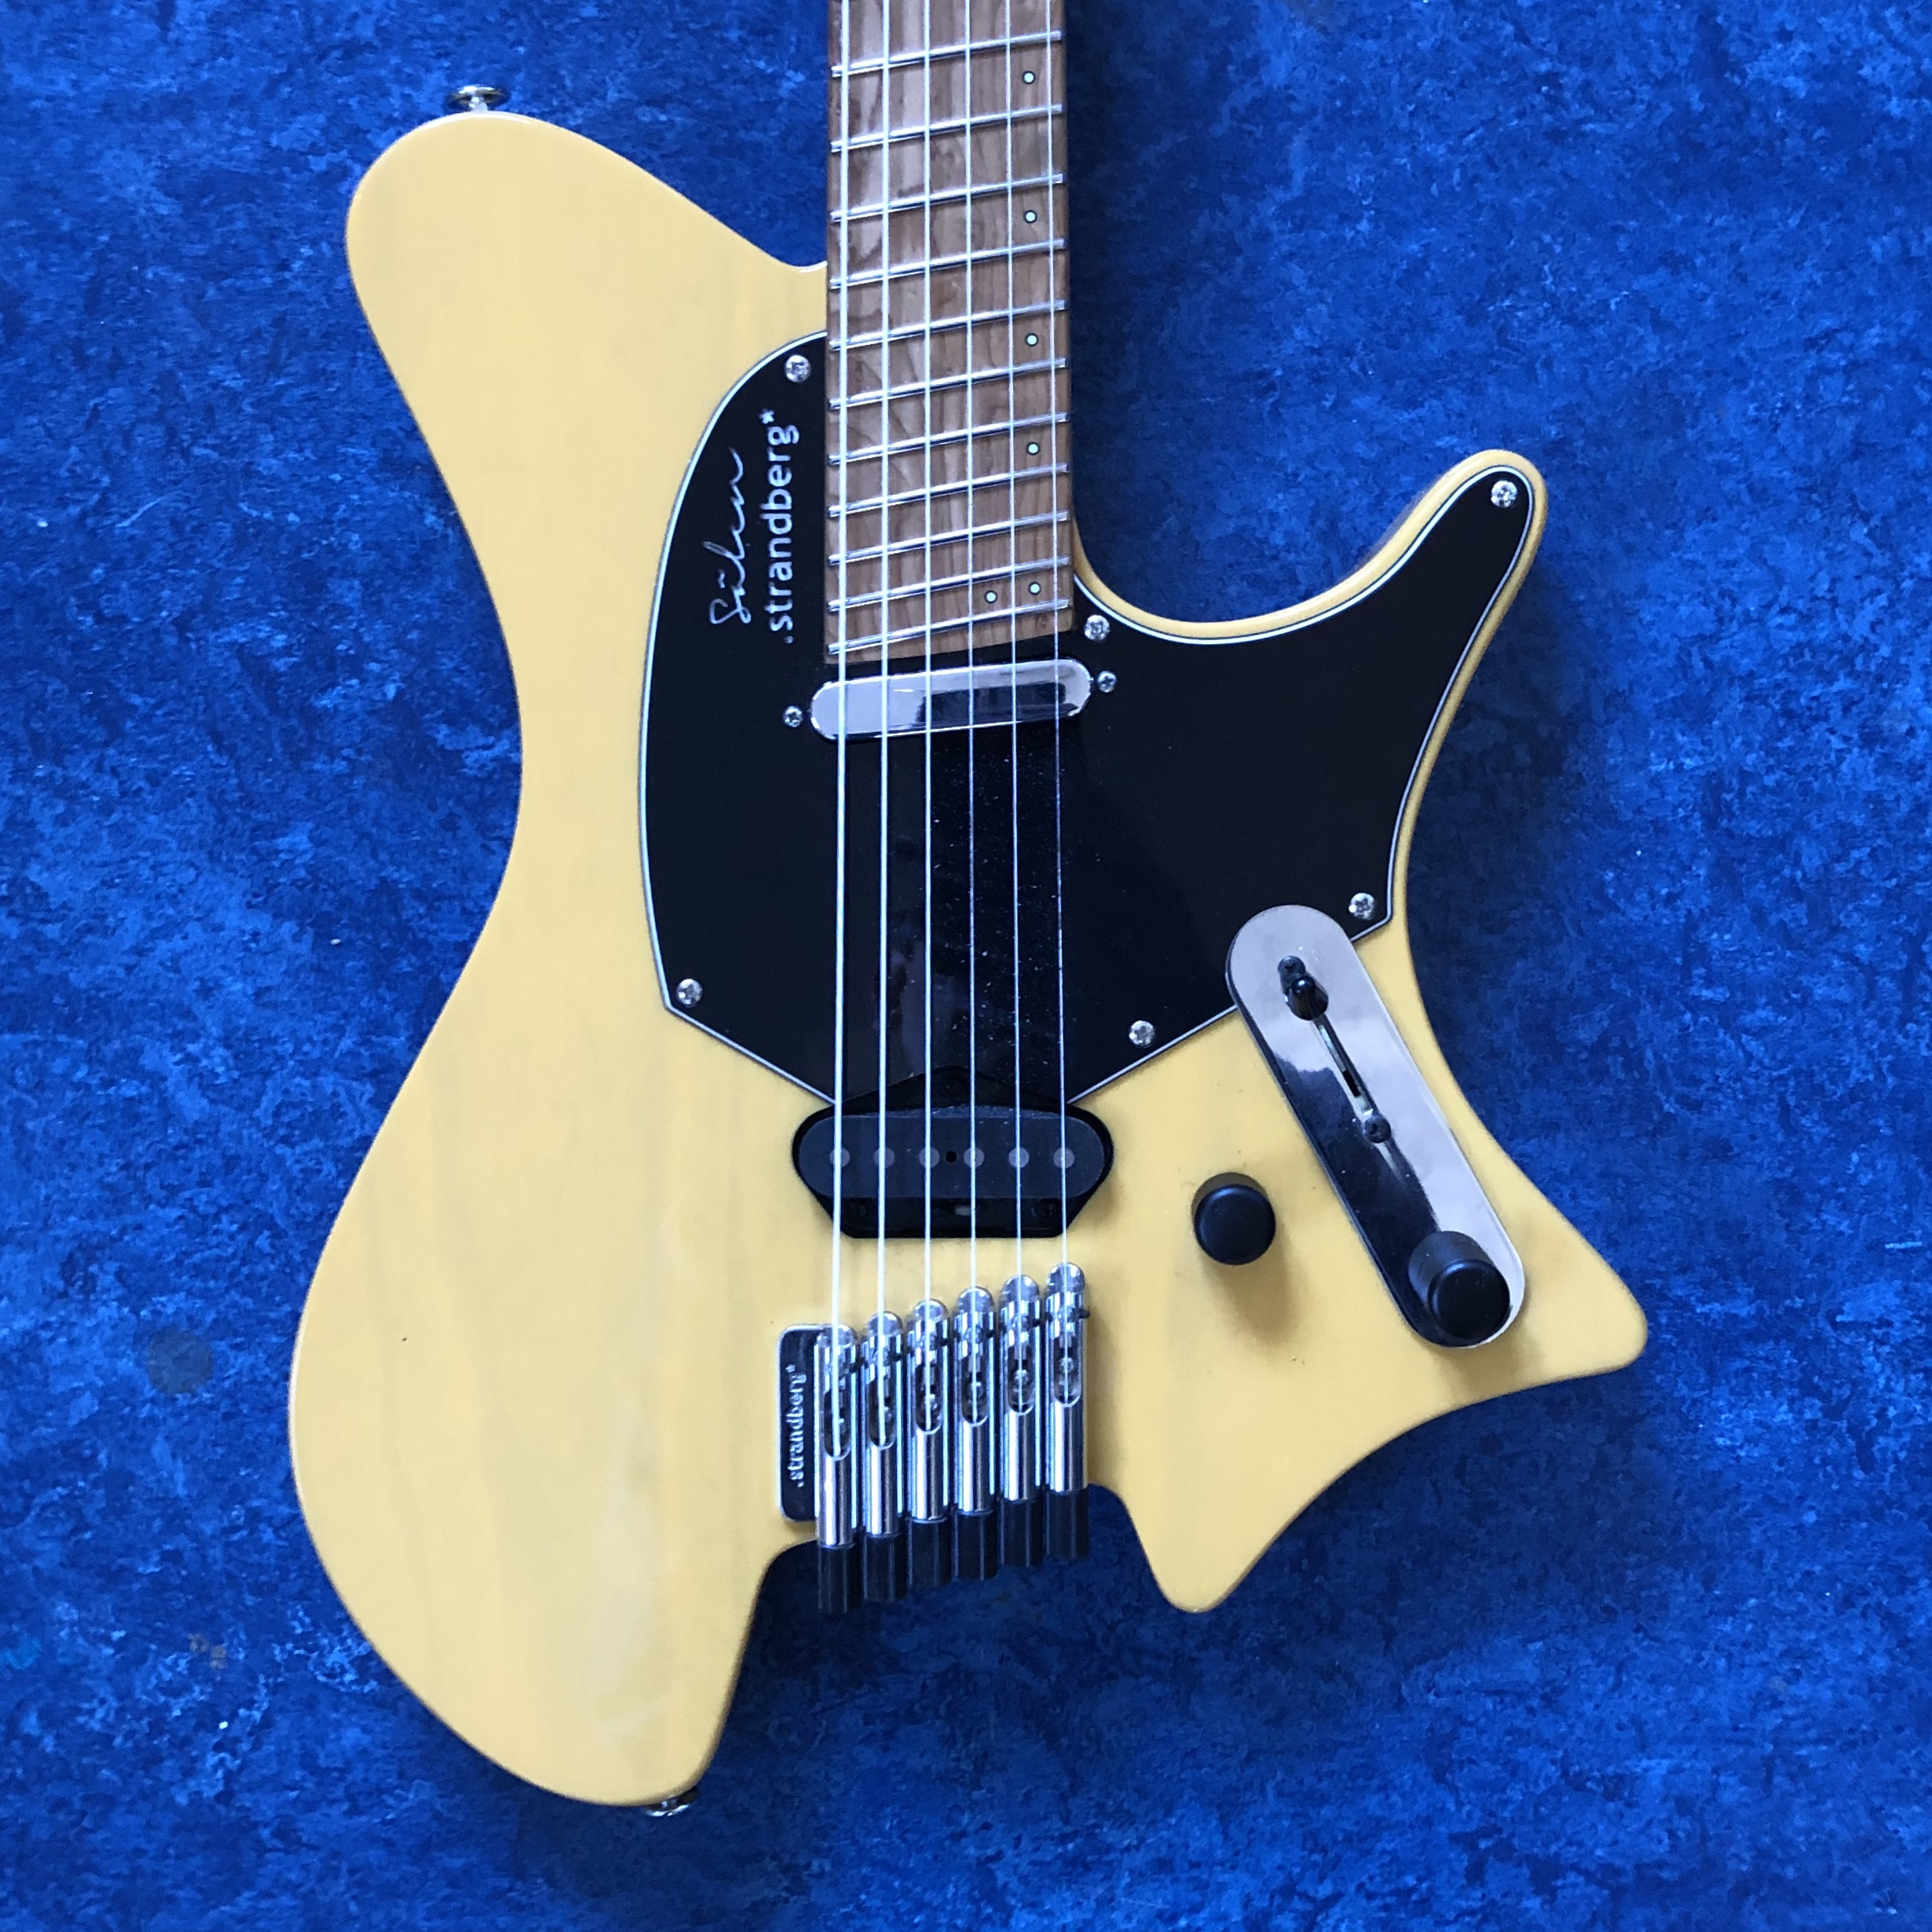 strandberg-salen-guitar-body.jpg